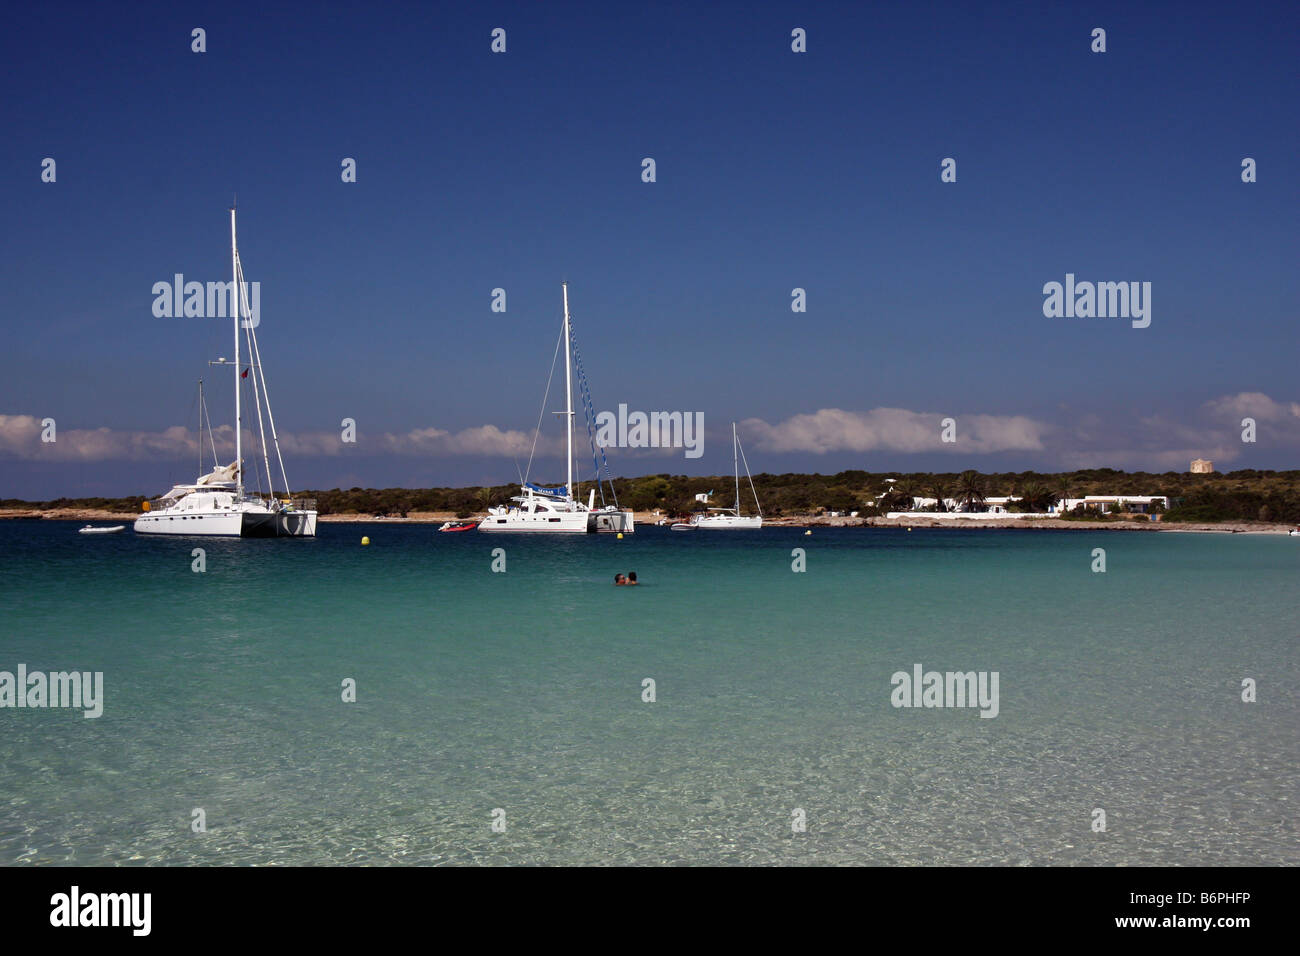 Sailing ships and yachts anchored in Isla de S'Espalmador, a small island next to Formentera and Ibiza, in the - Stock Image